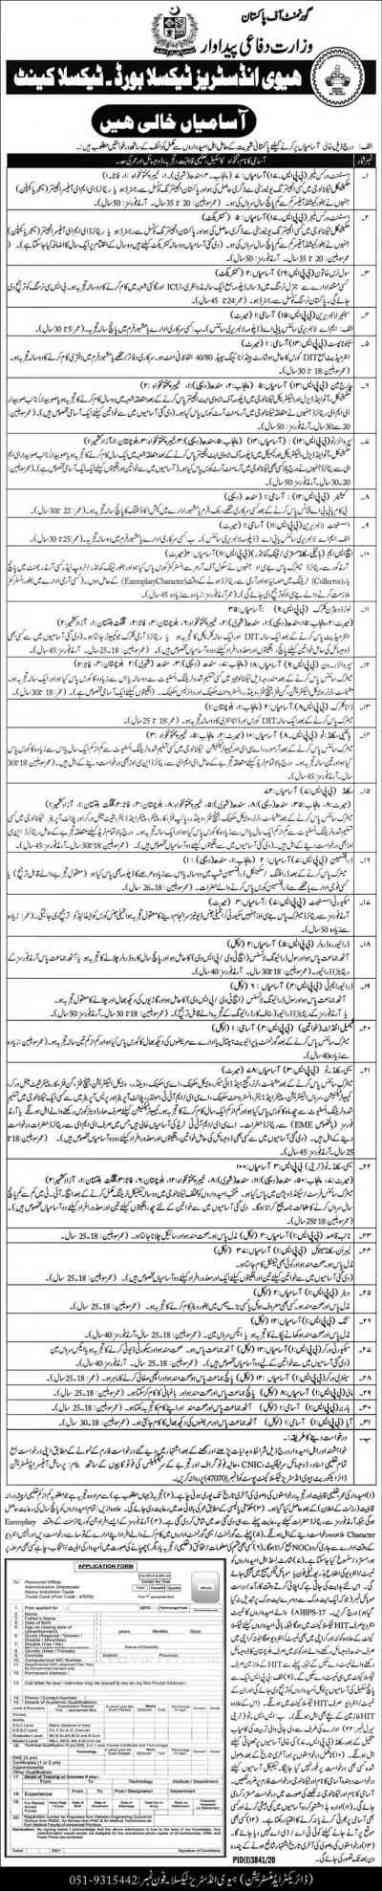 Heavy Industries Taxila Board HIT Jobs 2021 Application Form